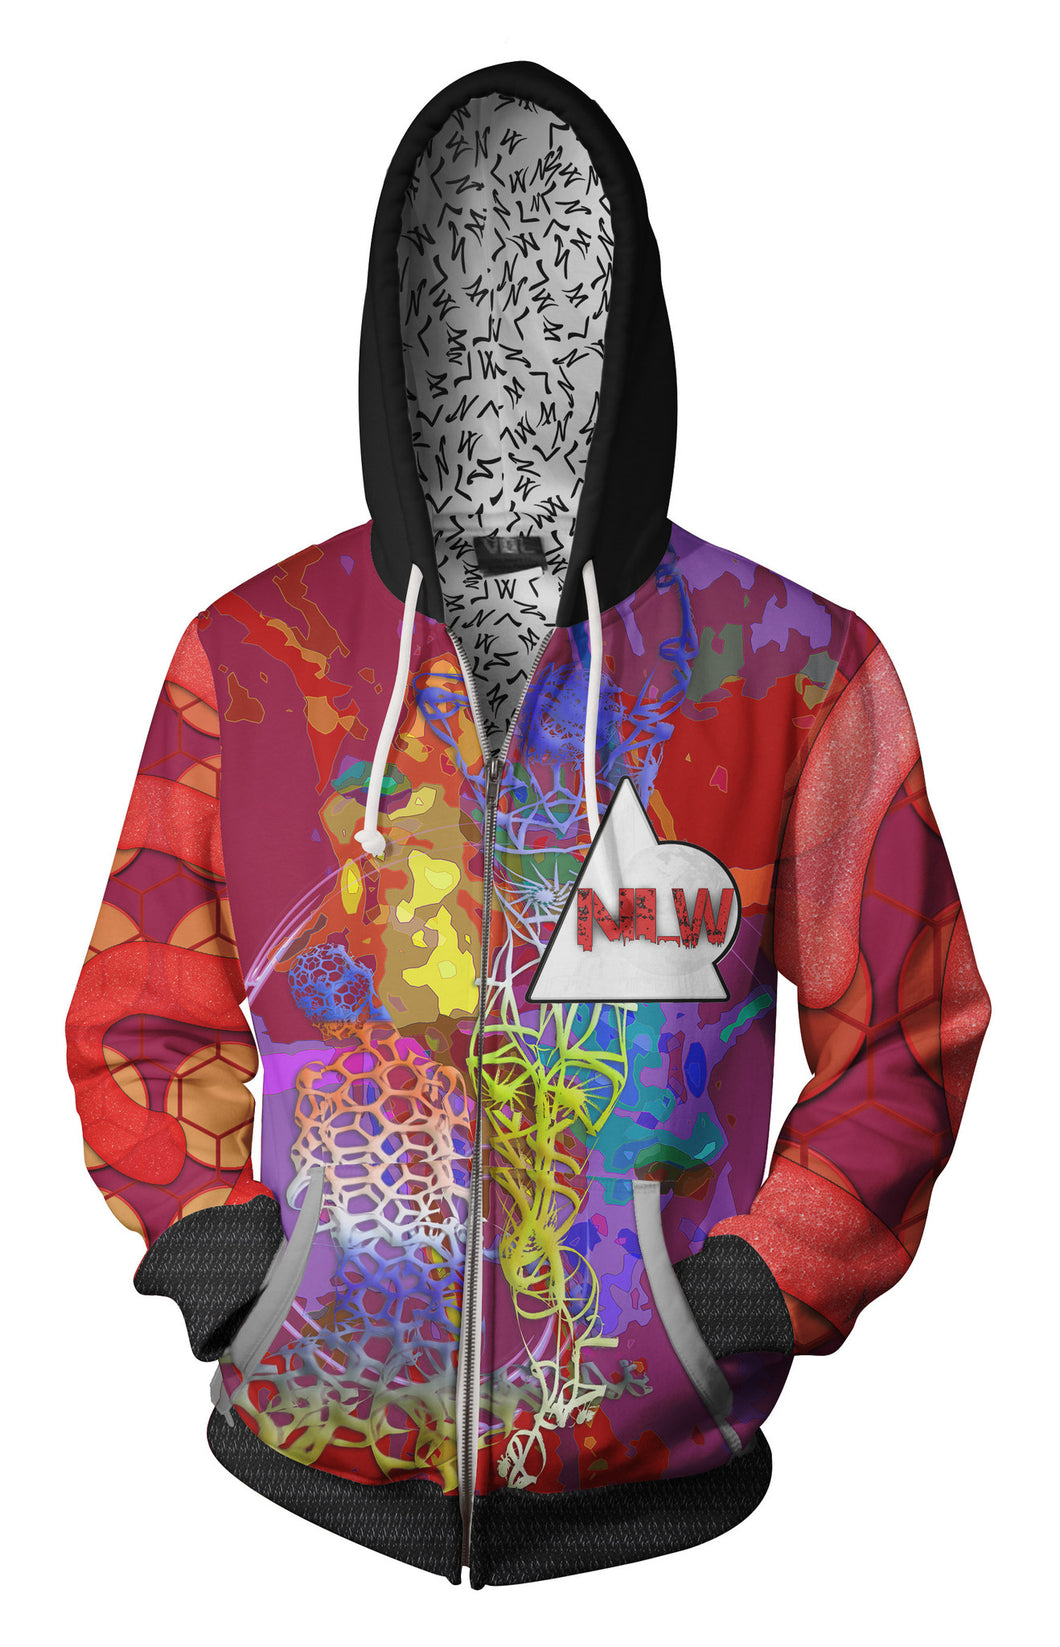 Honeycomb and Dancers-Adult Zip-Up Hoodie